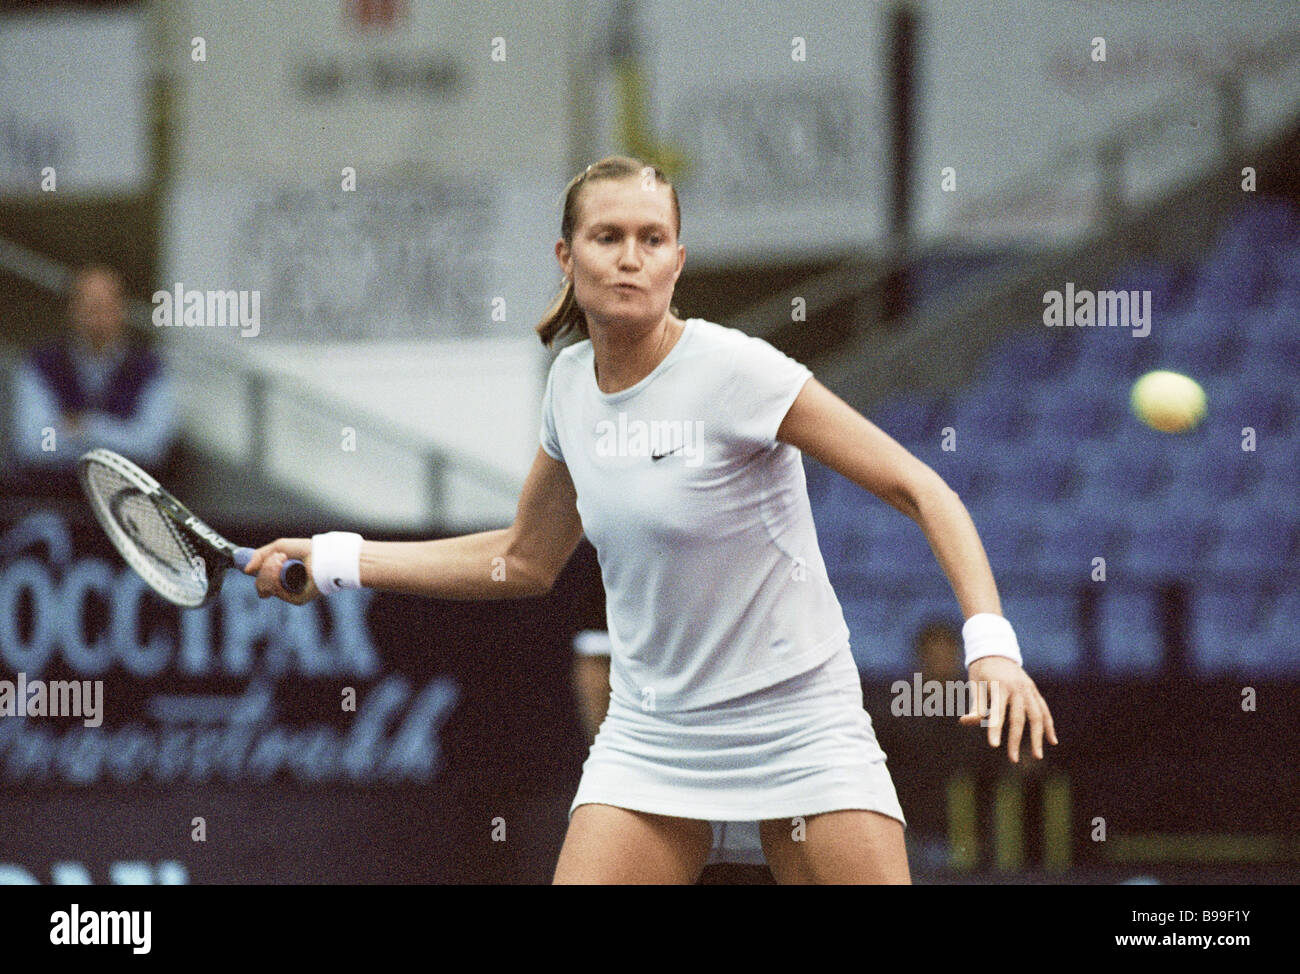 Yelena Bovina in a match the Kremlin Cup tournament - Stock Image